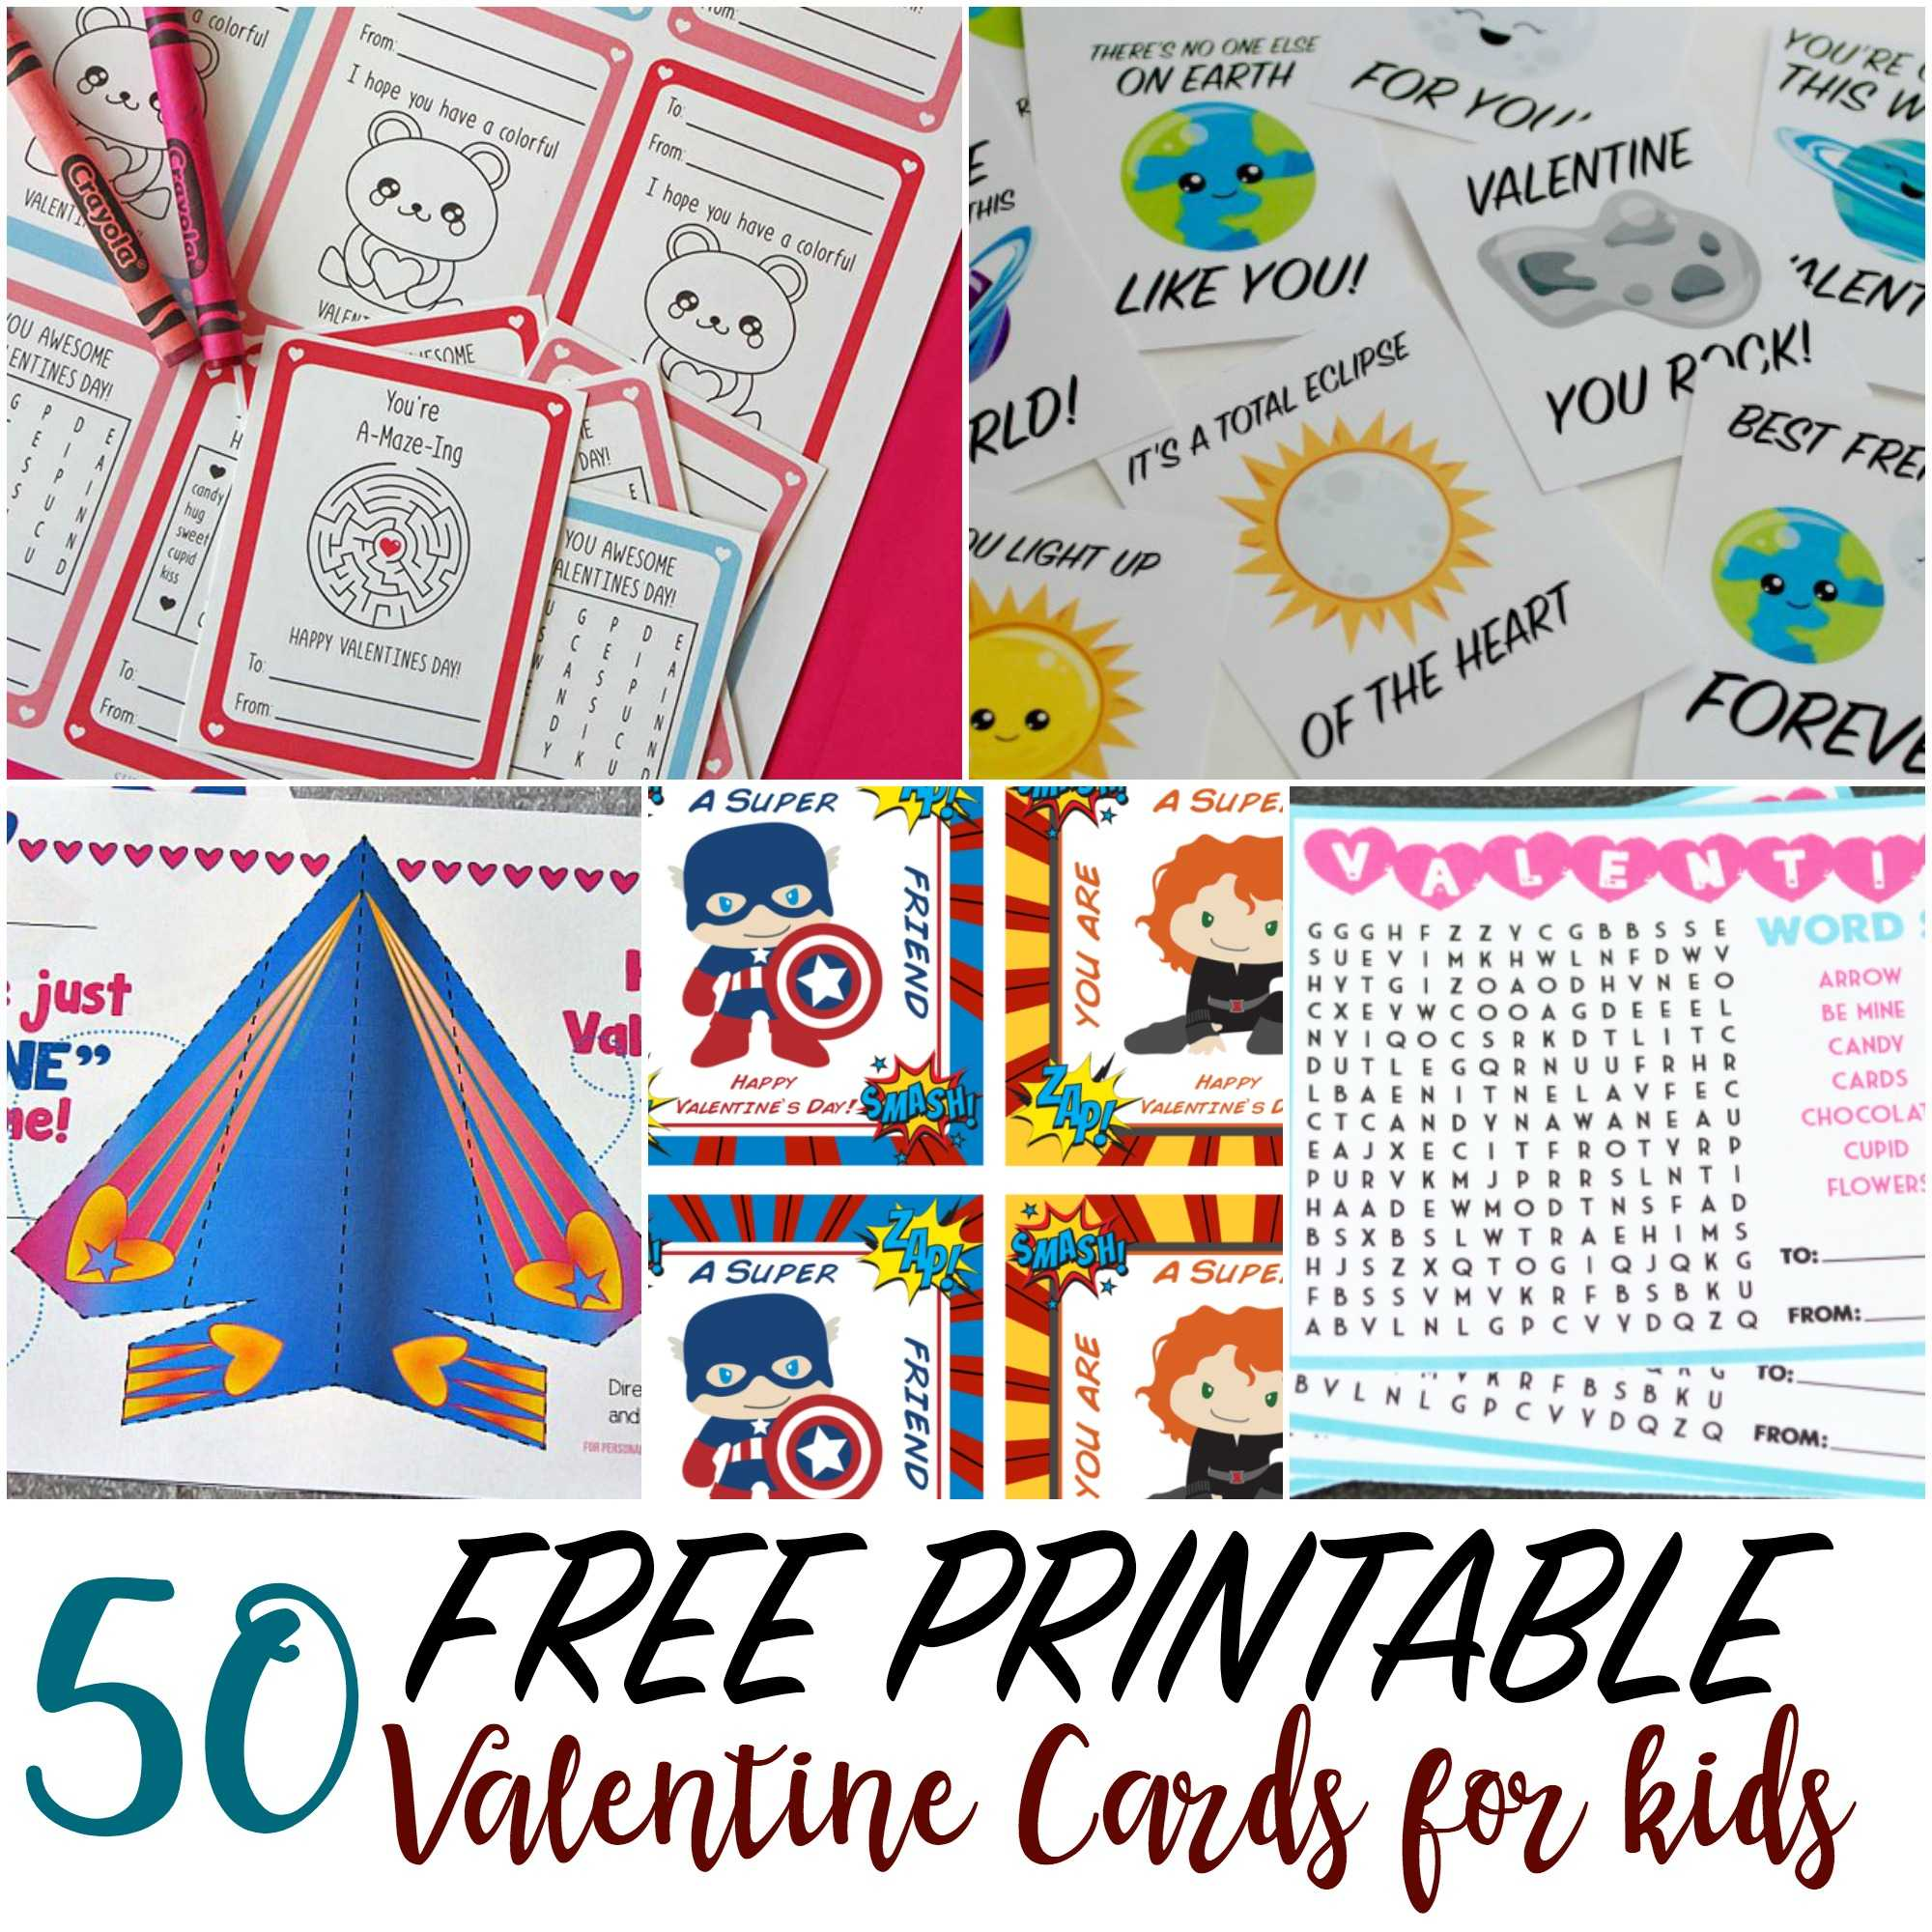 50 Printable Valentine Cards For Kids Pertaining To Valentine Card Template For Kids